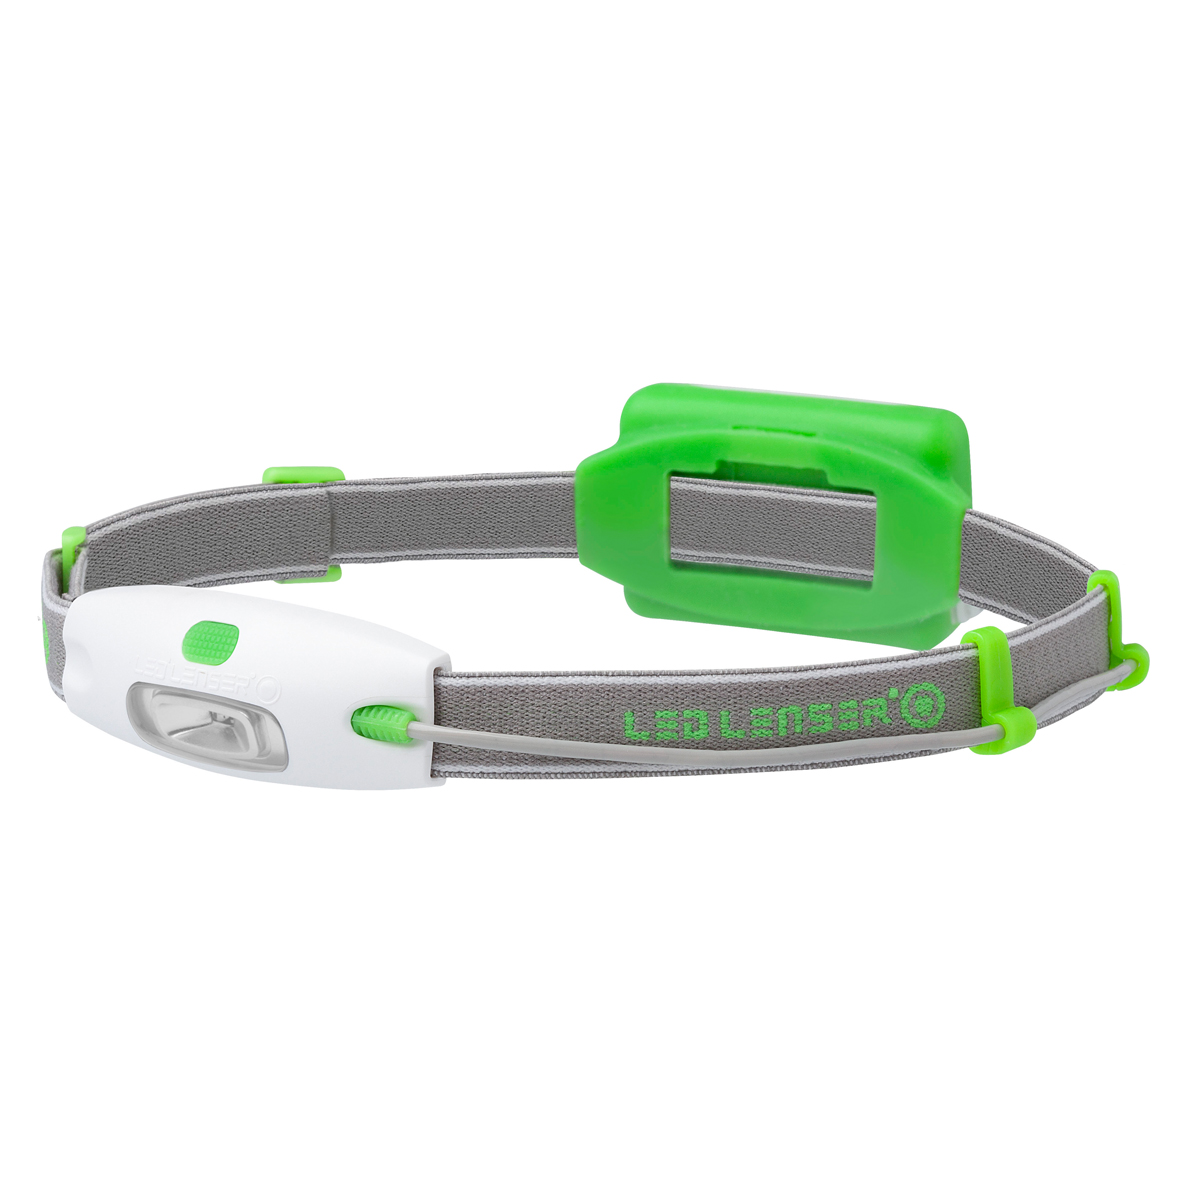 Neo - Green Headlamp